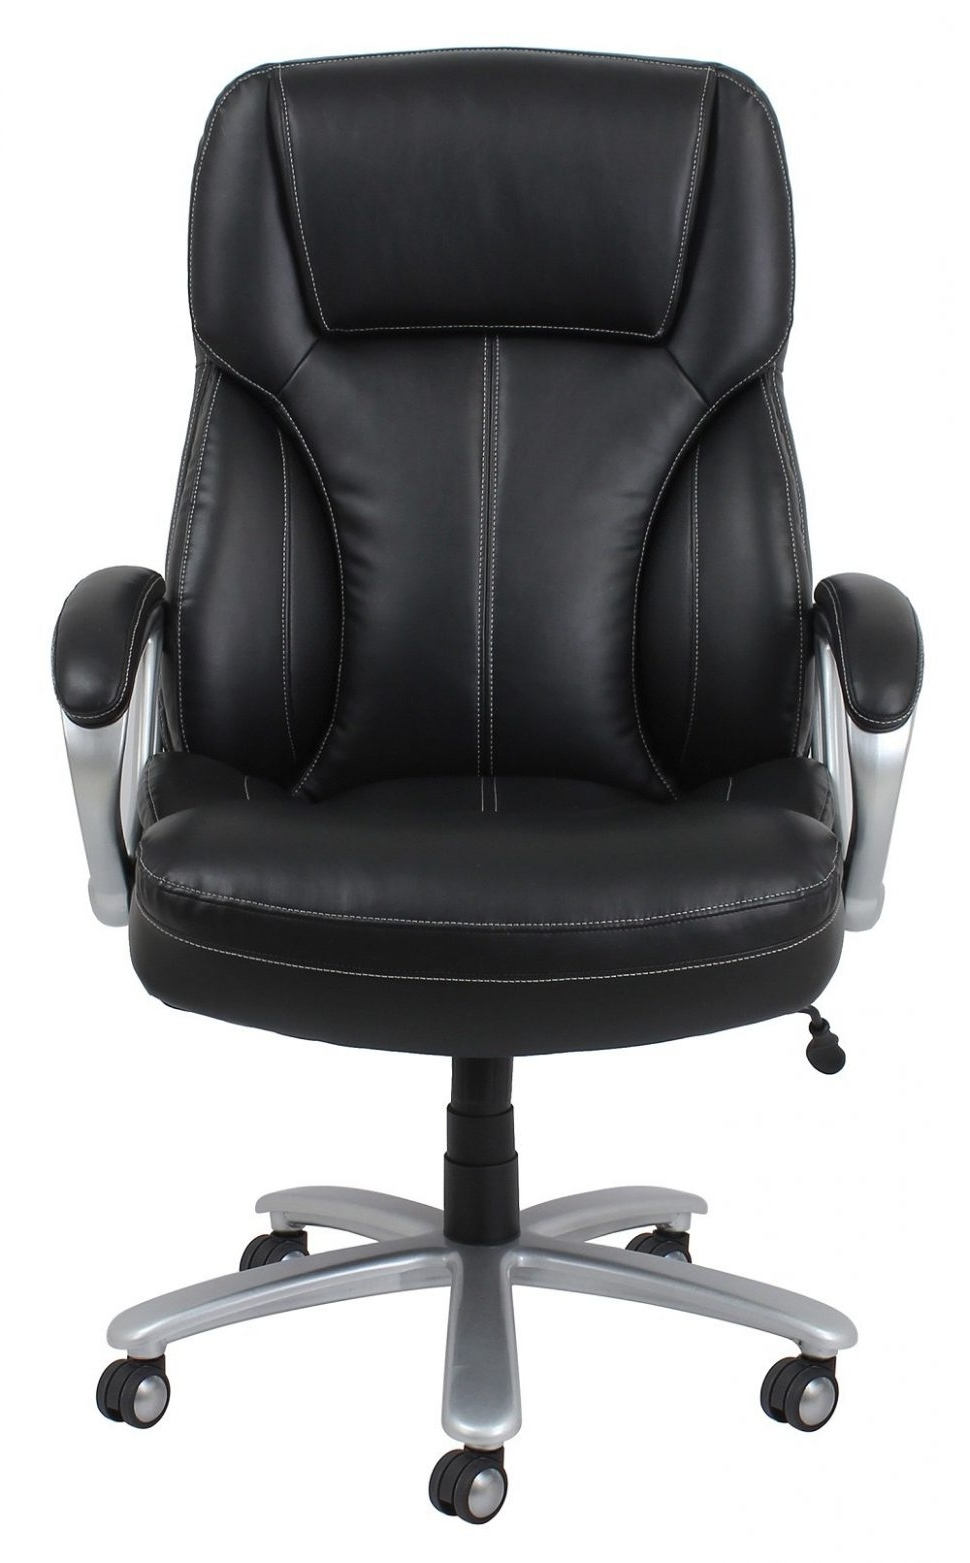 Furniture : Modern Office Chair Executive Chairs For Sale Within Current Modern Executive Office Chairs (View 3 of 20)